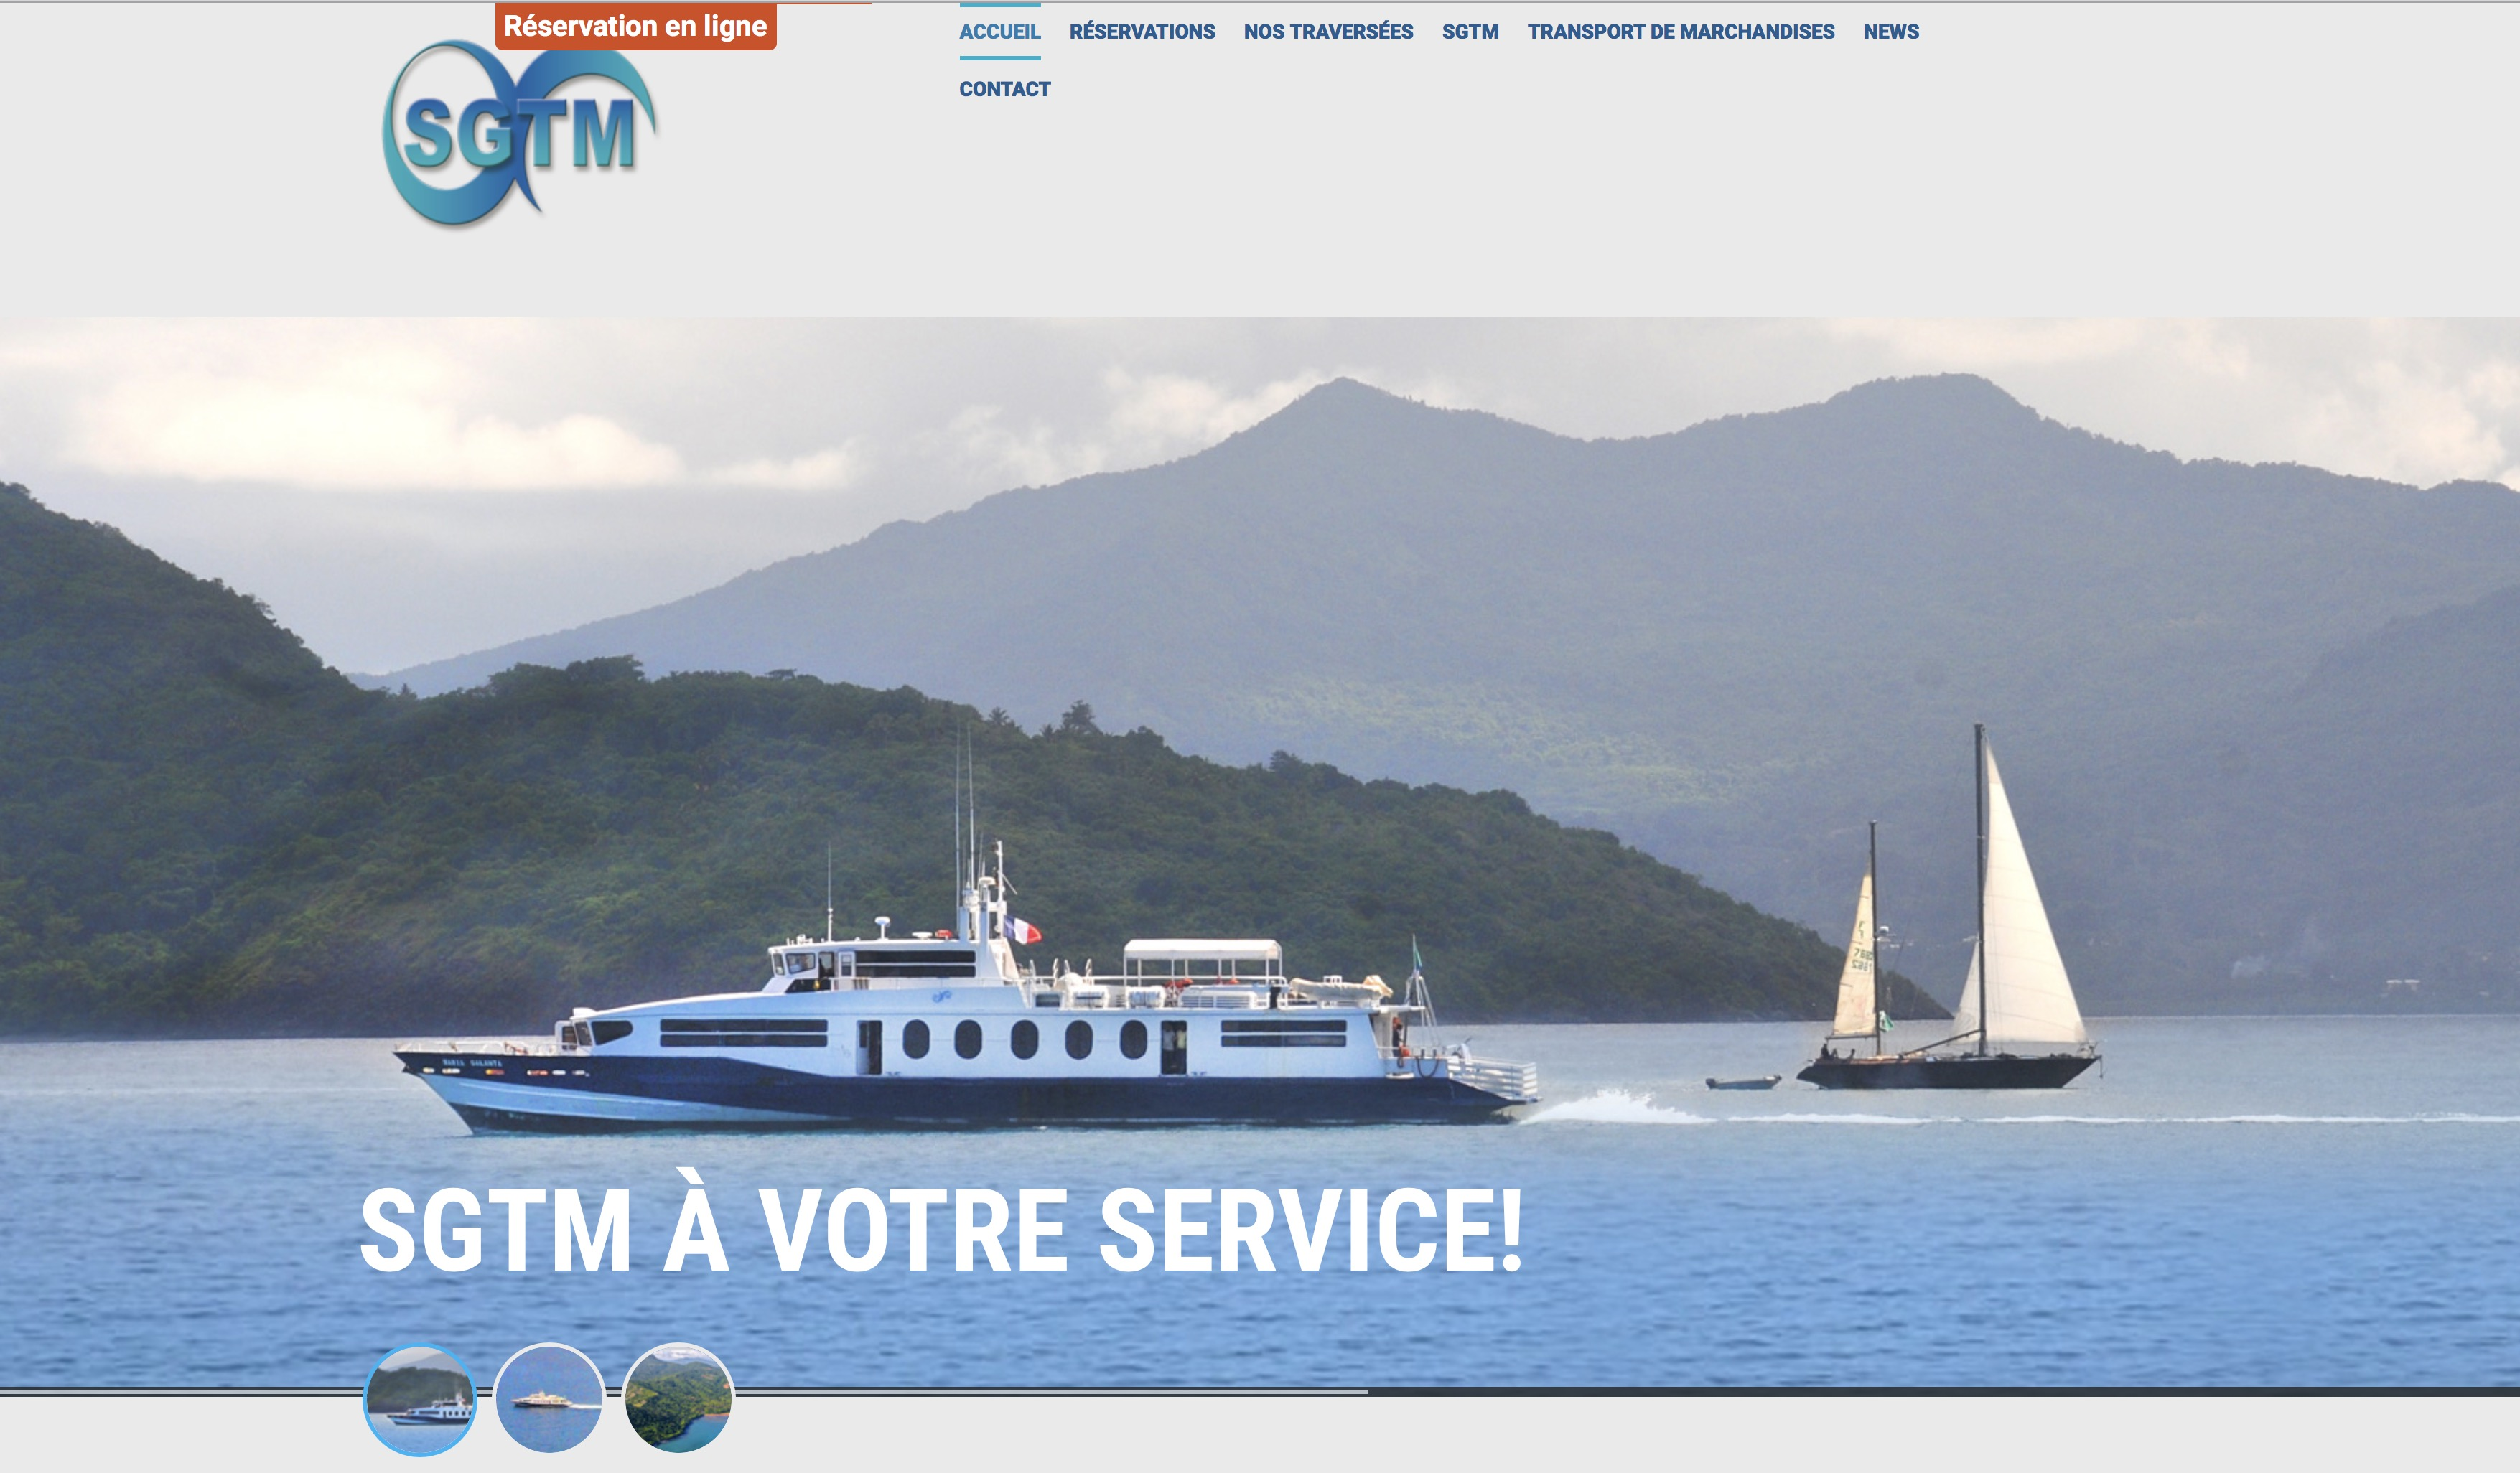 SGTM Compagnie Maritime